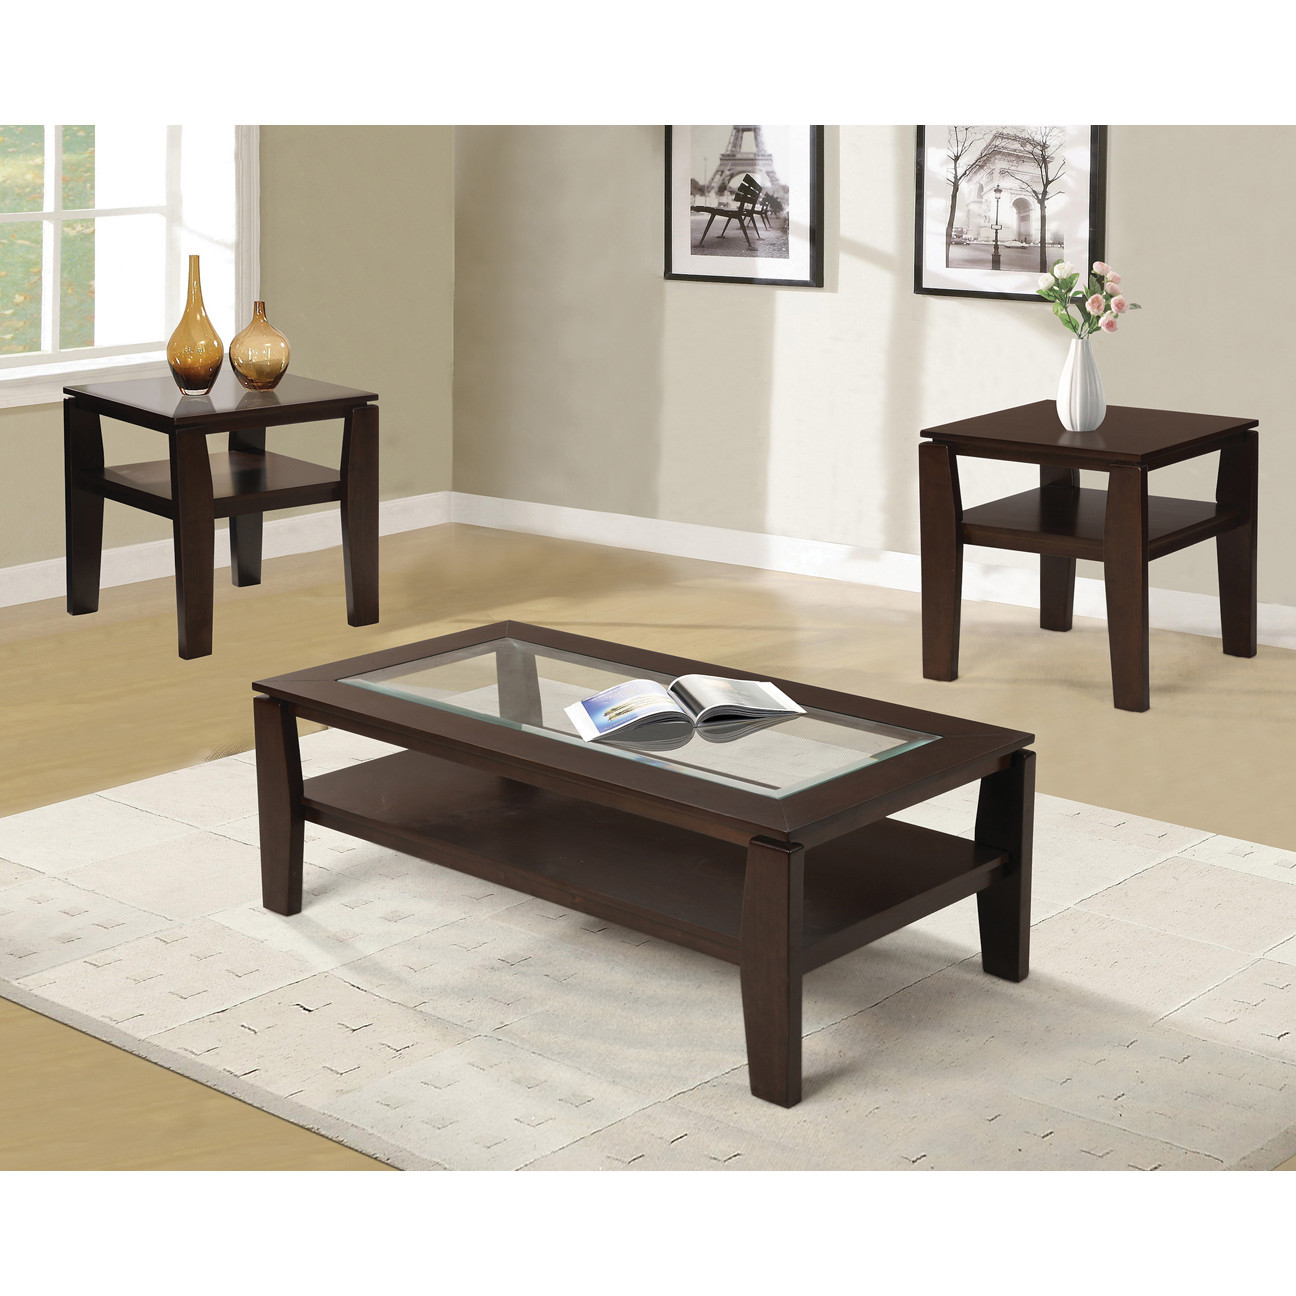 Best ideas about Ashley Furniture Coffee Tables . Save or Pin Coffee Tables Ashley Furniture Coffee Tables Table Set Now.